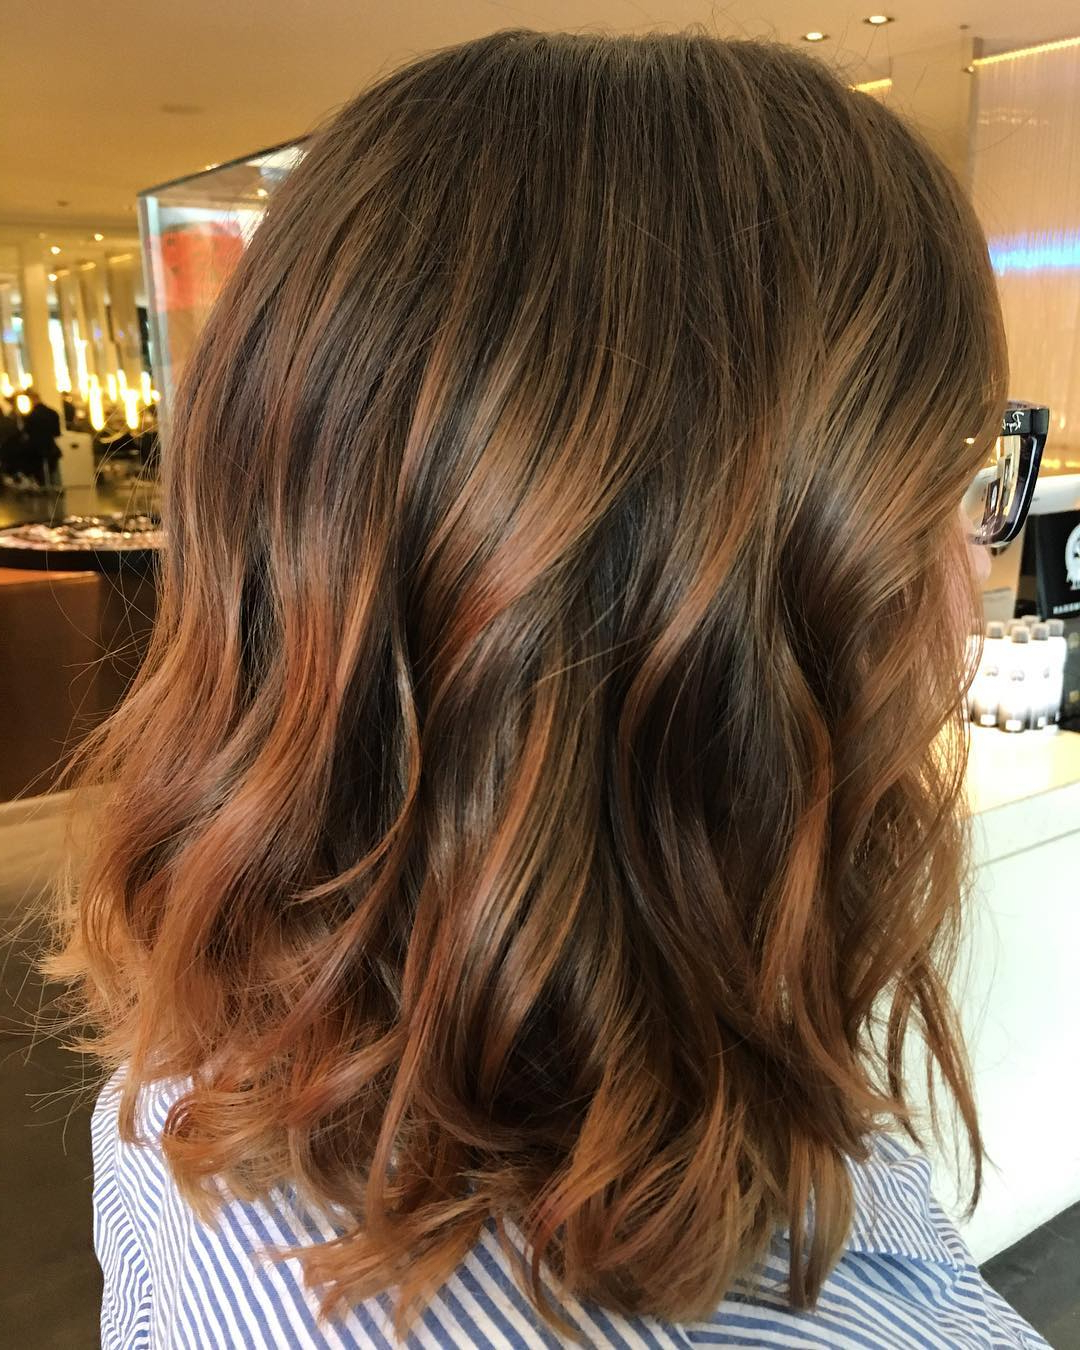 Widely Used Medium Haircuts Styles With Layers Inside 25 Exciting Medium Length Layered Haircuts – Popular Haircuts (View 19 of 20)